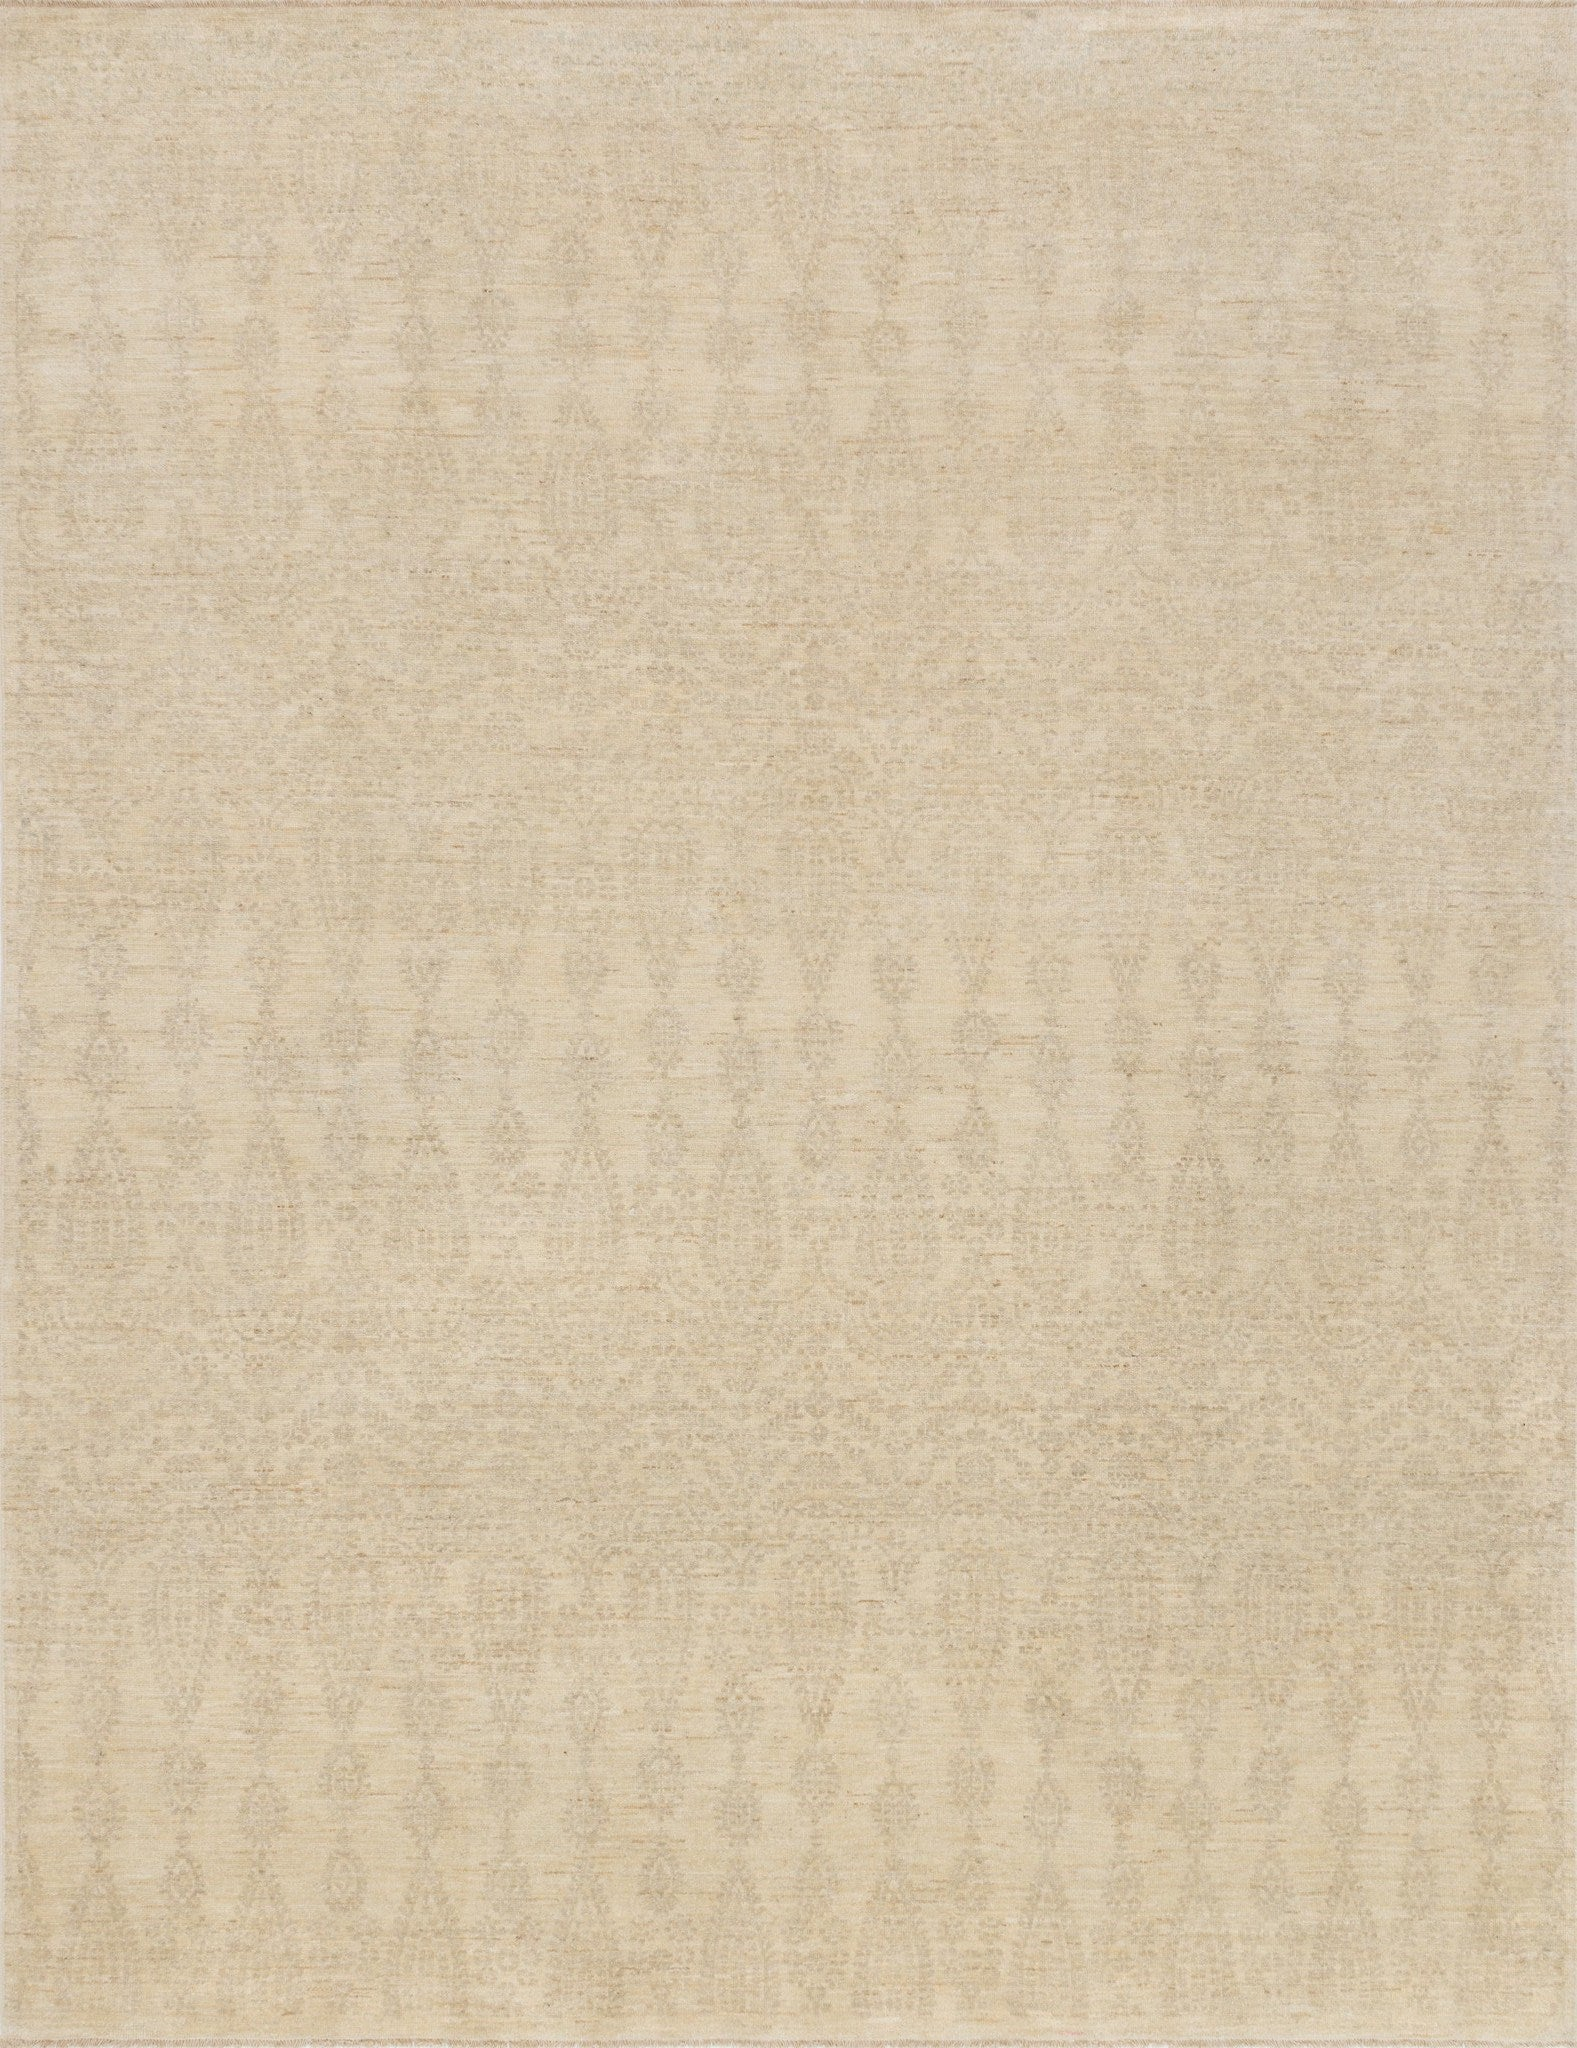 Loloi Essex EQ-03 Ivory/Tusk Area Rug main image